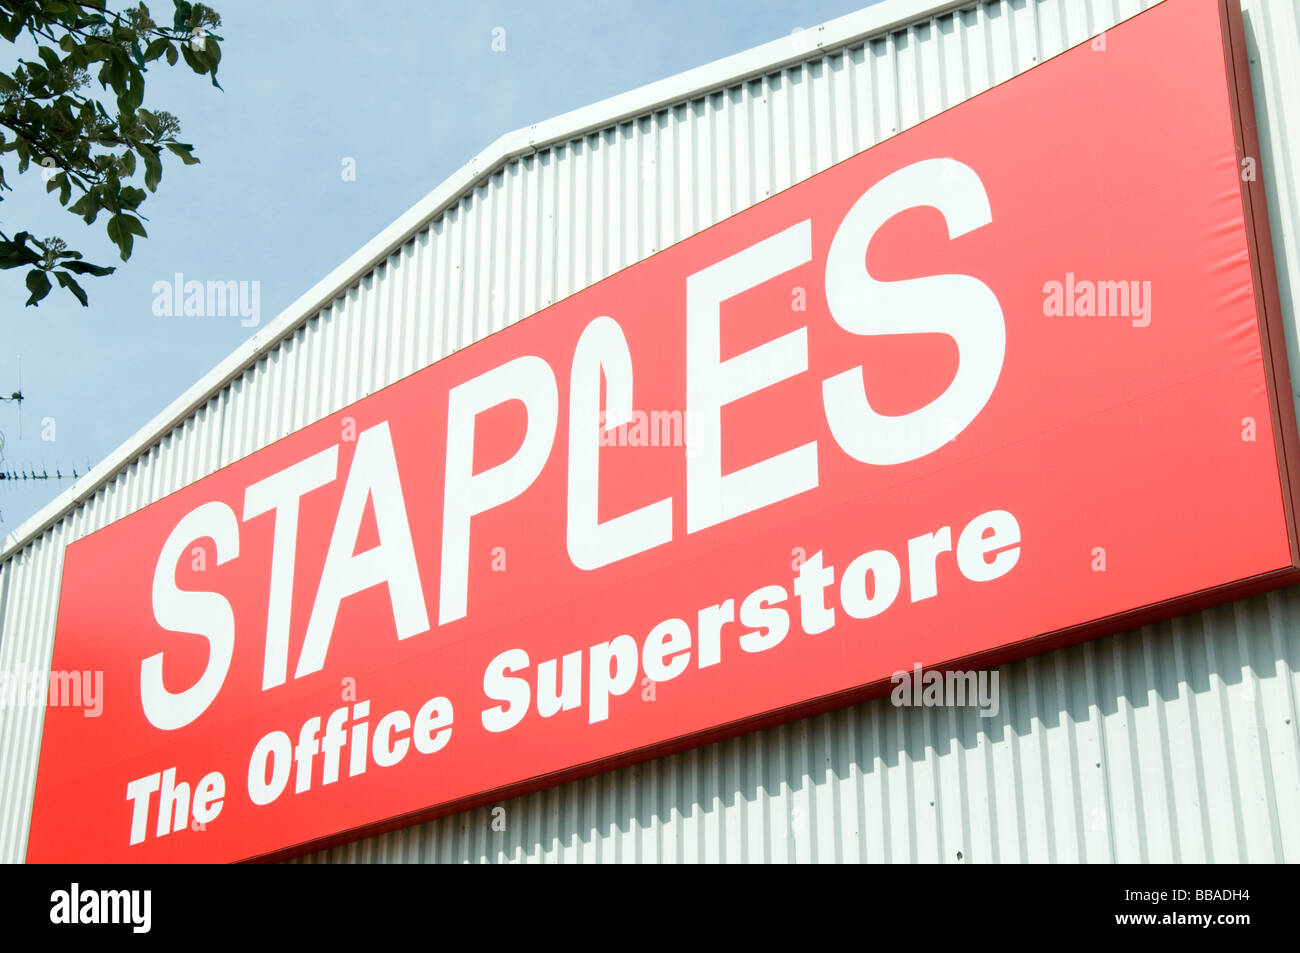 staples office superstore shop stationary out off town retail park retailer - Stock Image